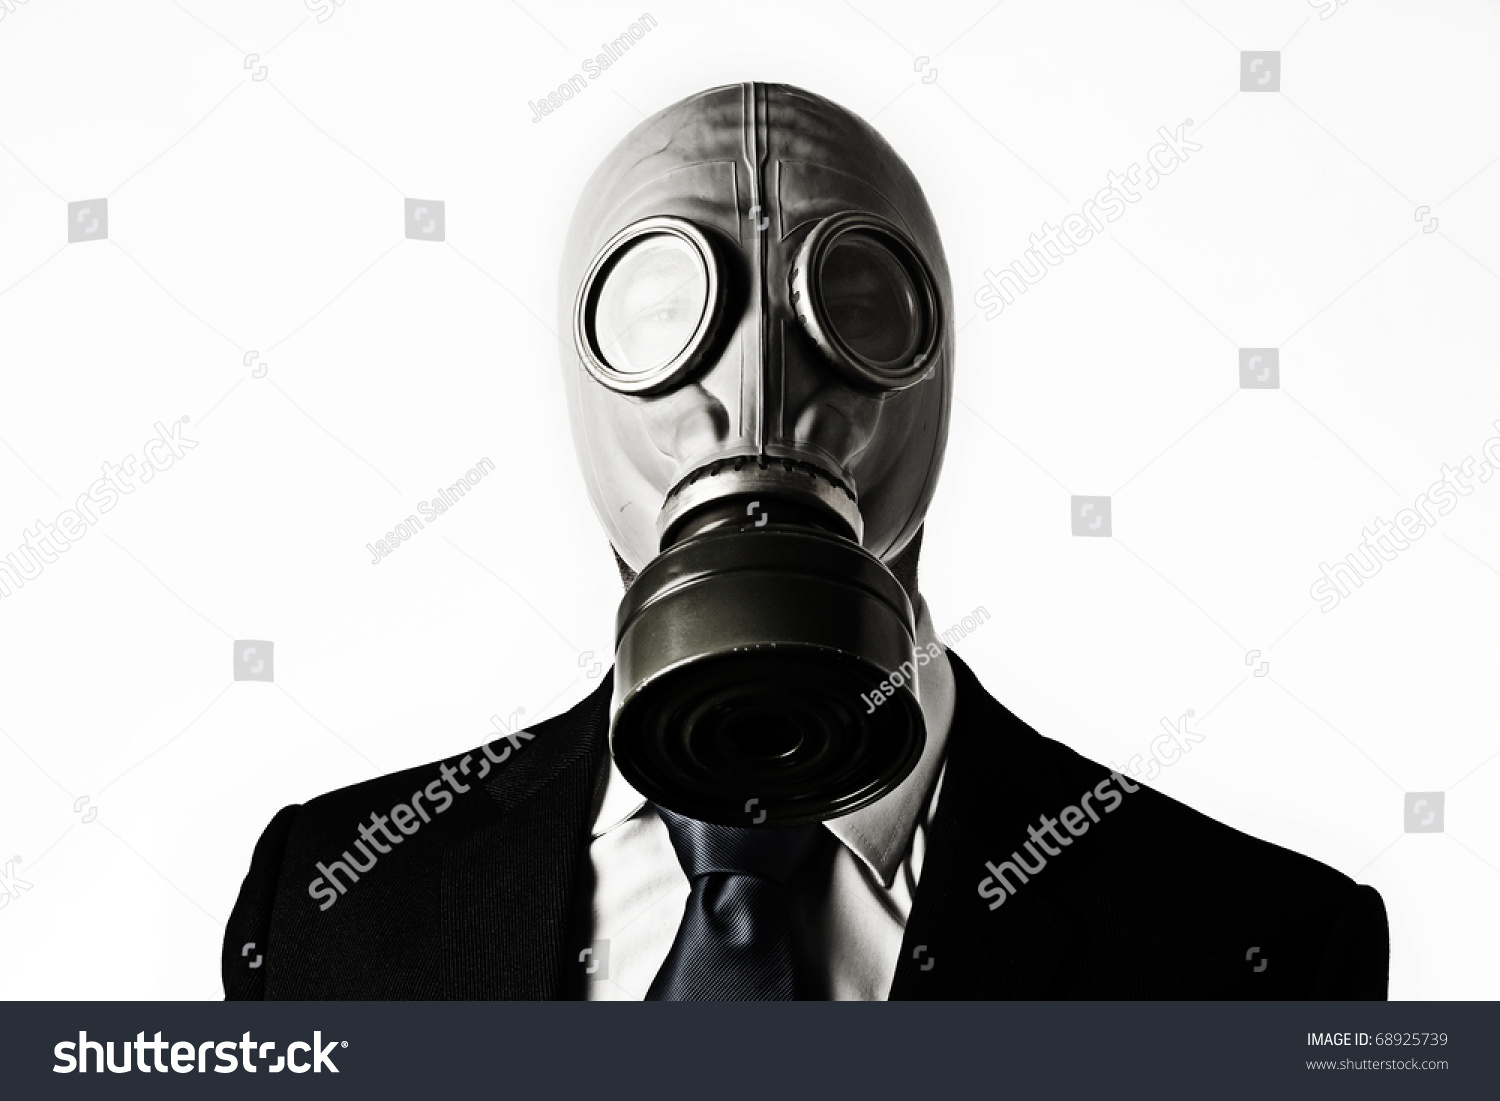 how to draw a person with a toxic mask